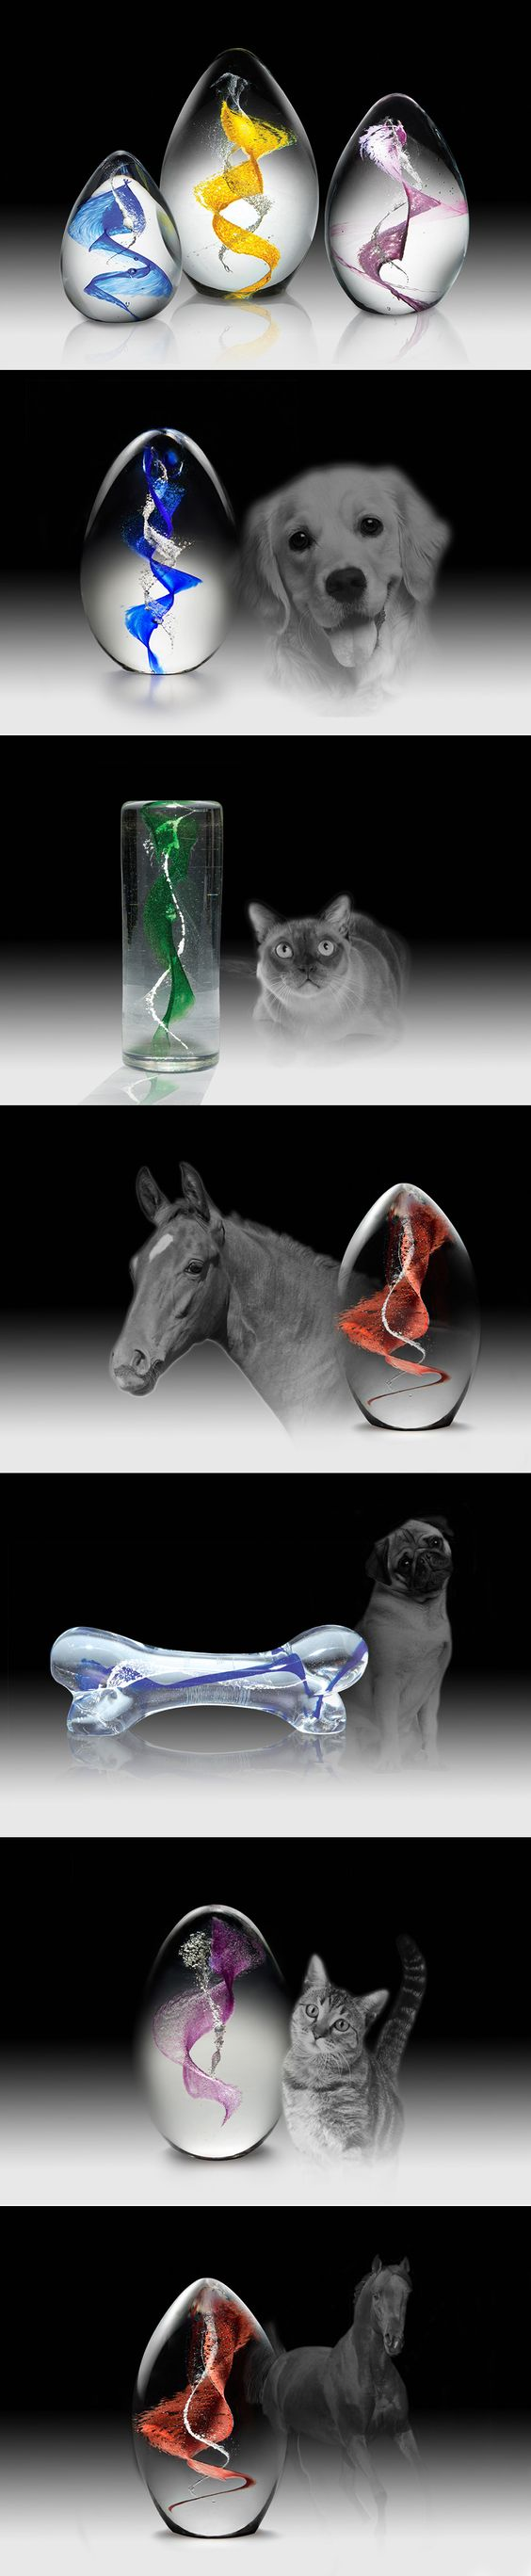 Crystal Remembrance™ For Pets offers Pet Parents dealing with the loss of a beloved pet the unique opportunity to preserve a portion of their pets' cremated remains in a solid work of glass art.